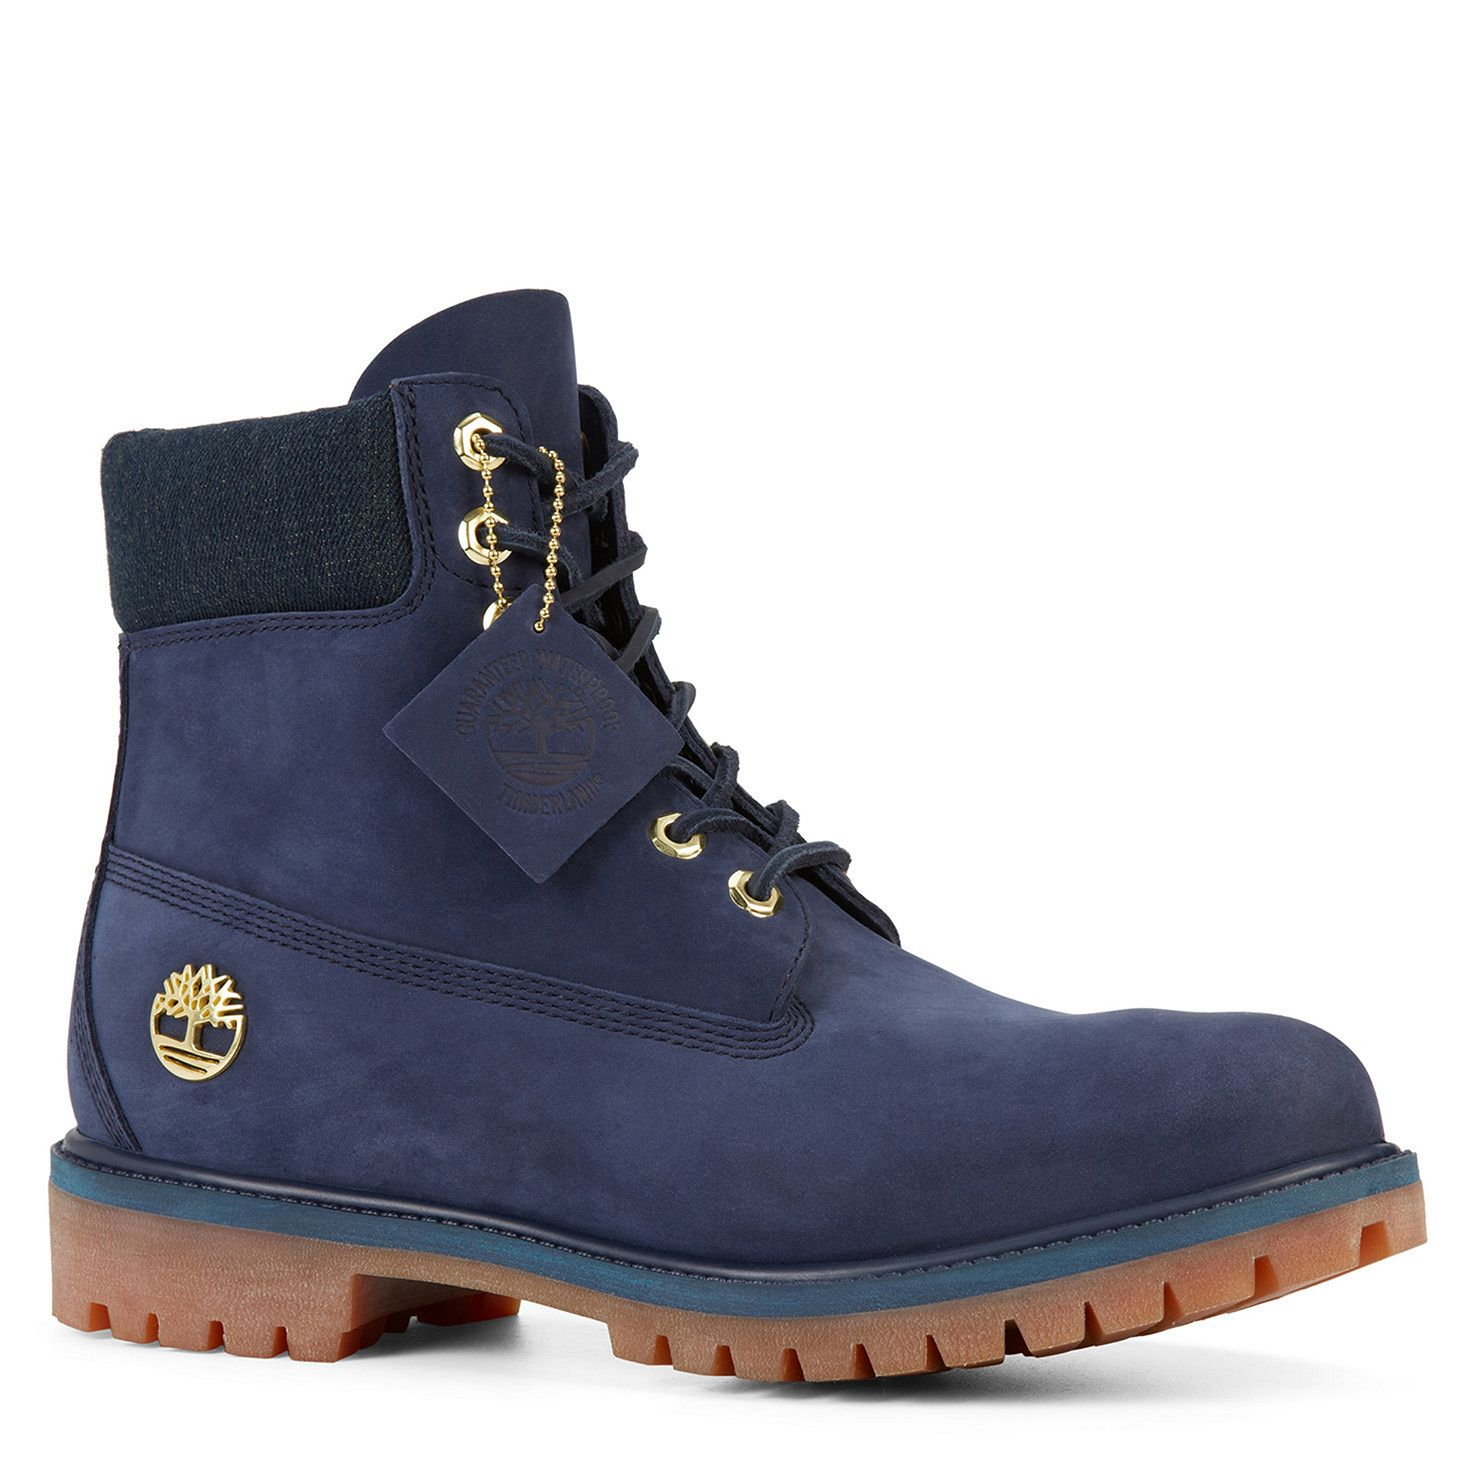 Navy blue premium Timberland THERISEN | Boots men, Boots